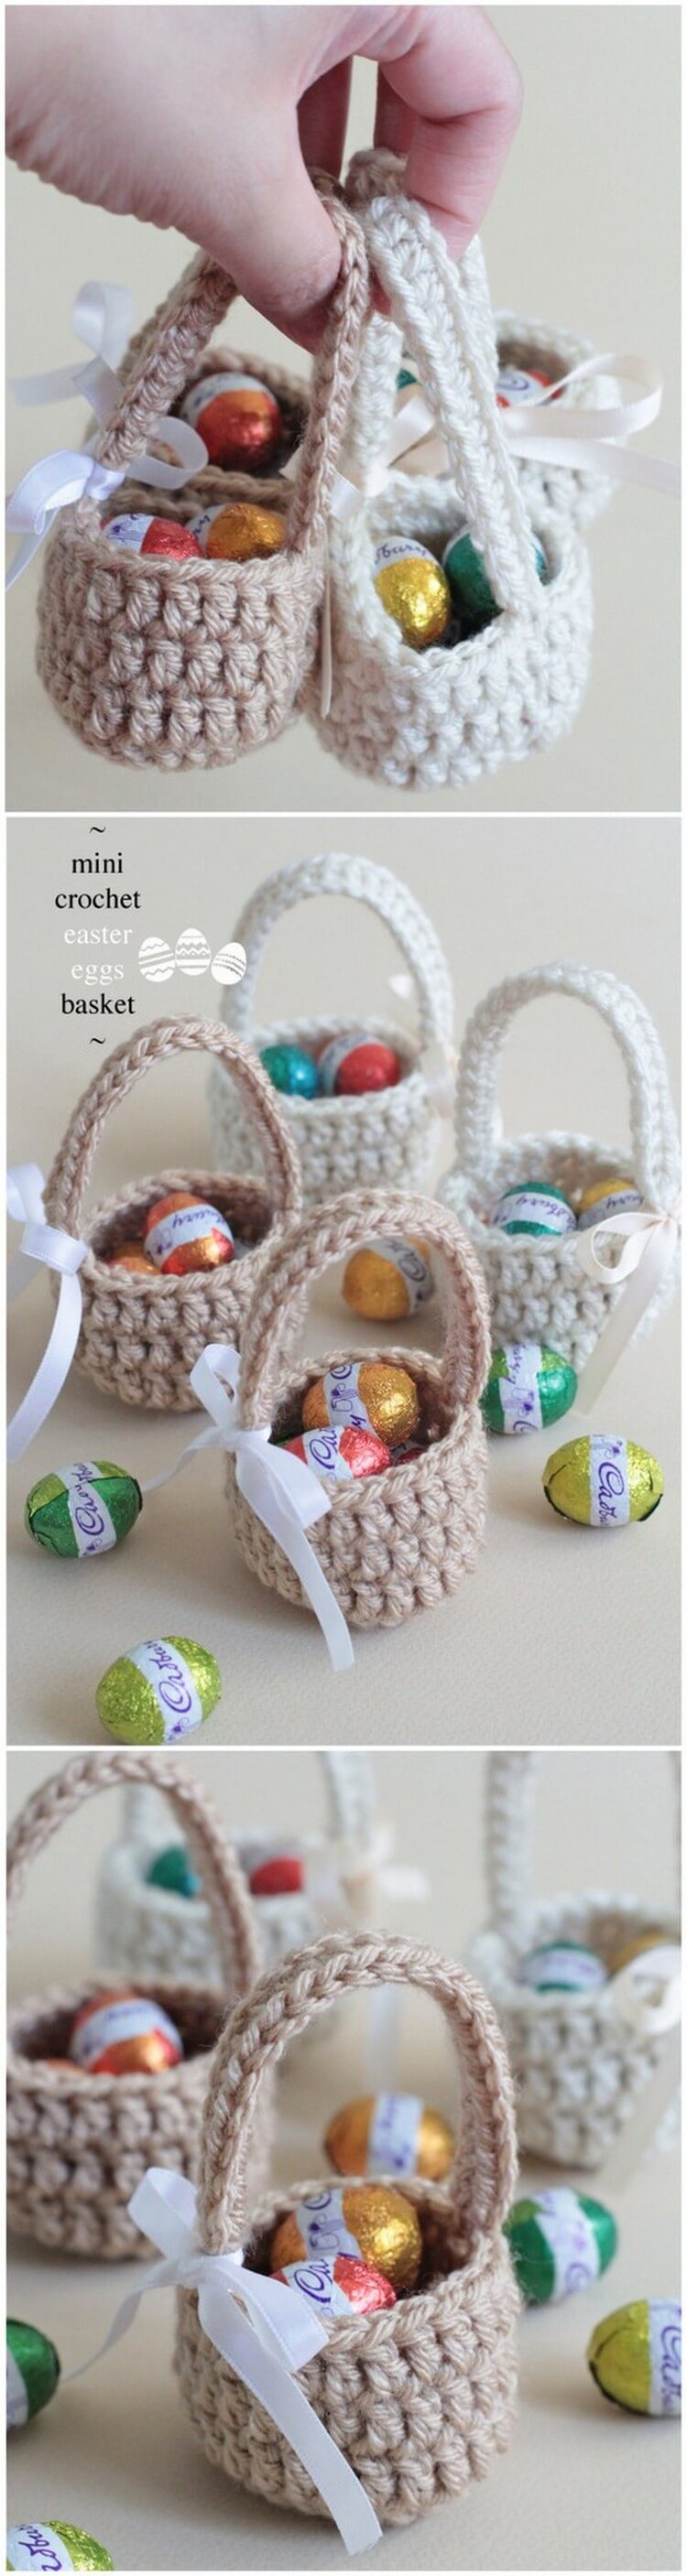 Crochet Basket Pattern (71)